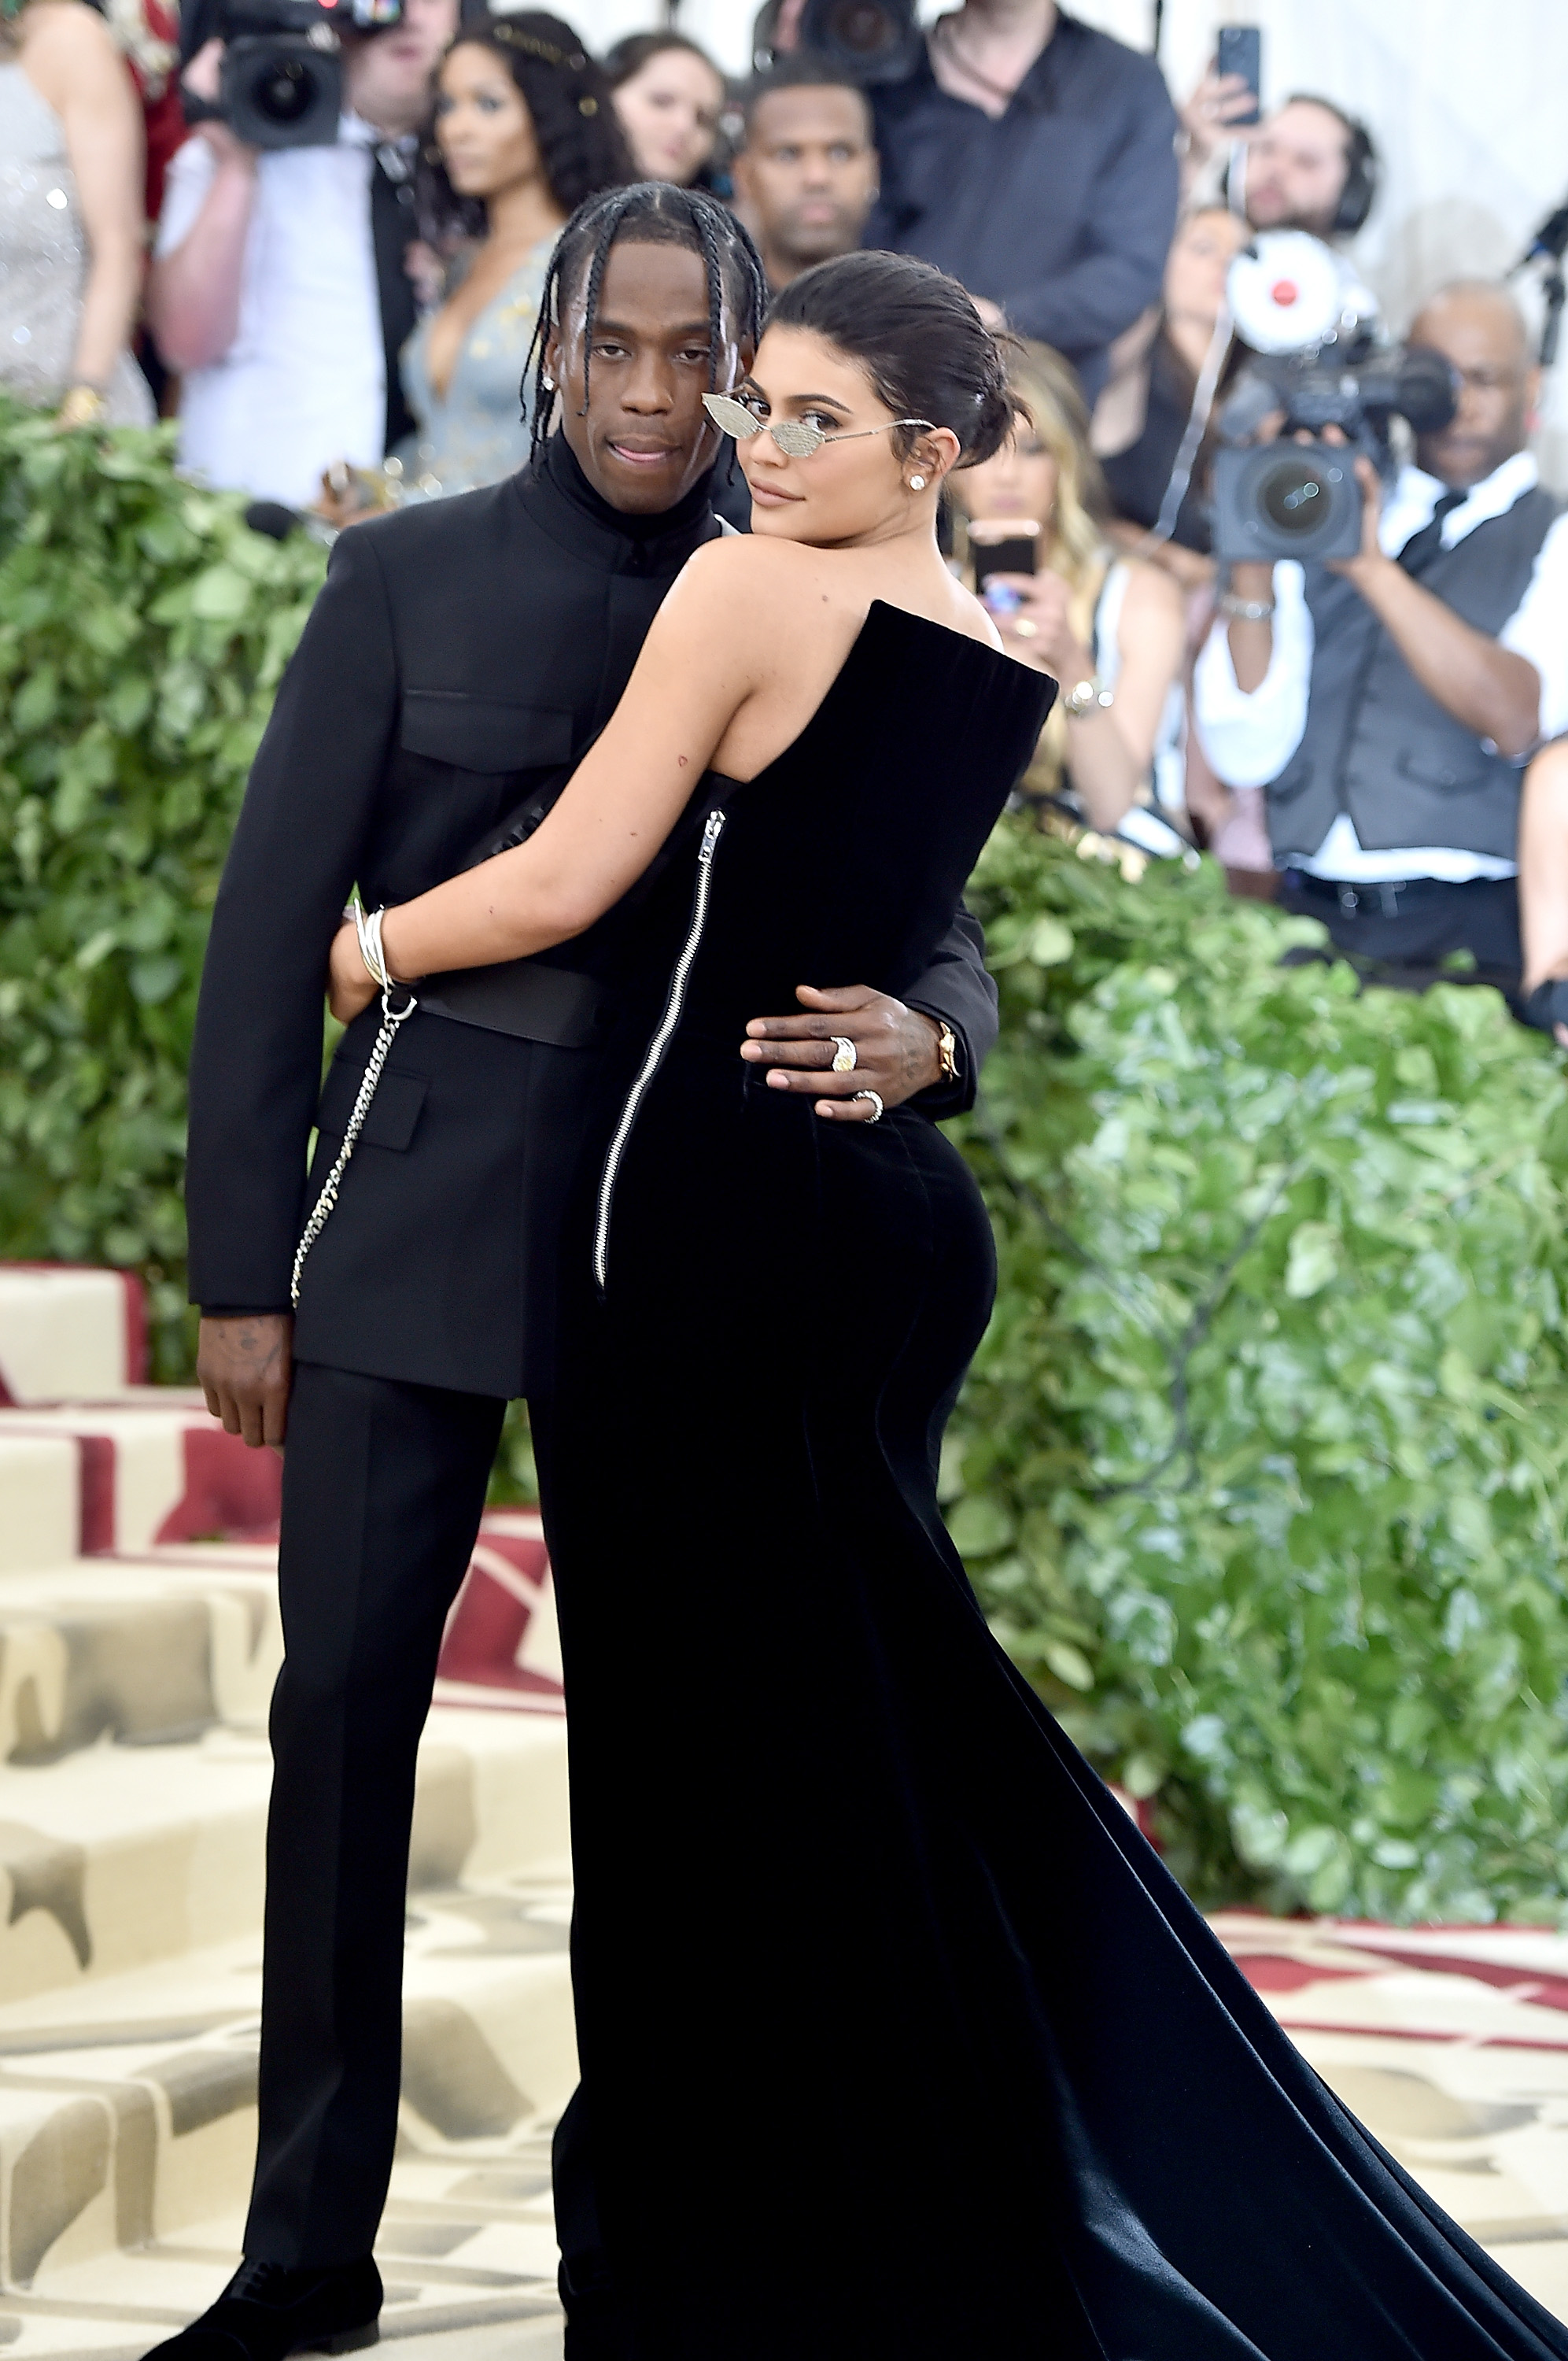 Travis Scott and Kylie Jenner attend the Heavenly Bodies: Fashion & The Catholic Imagination Costume Institute Gala at The Metropolitan Museum of Art on May 7, 2018, in New York City.